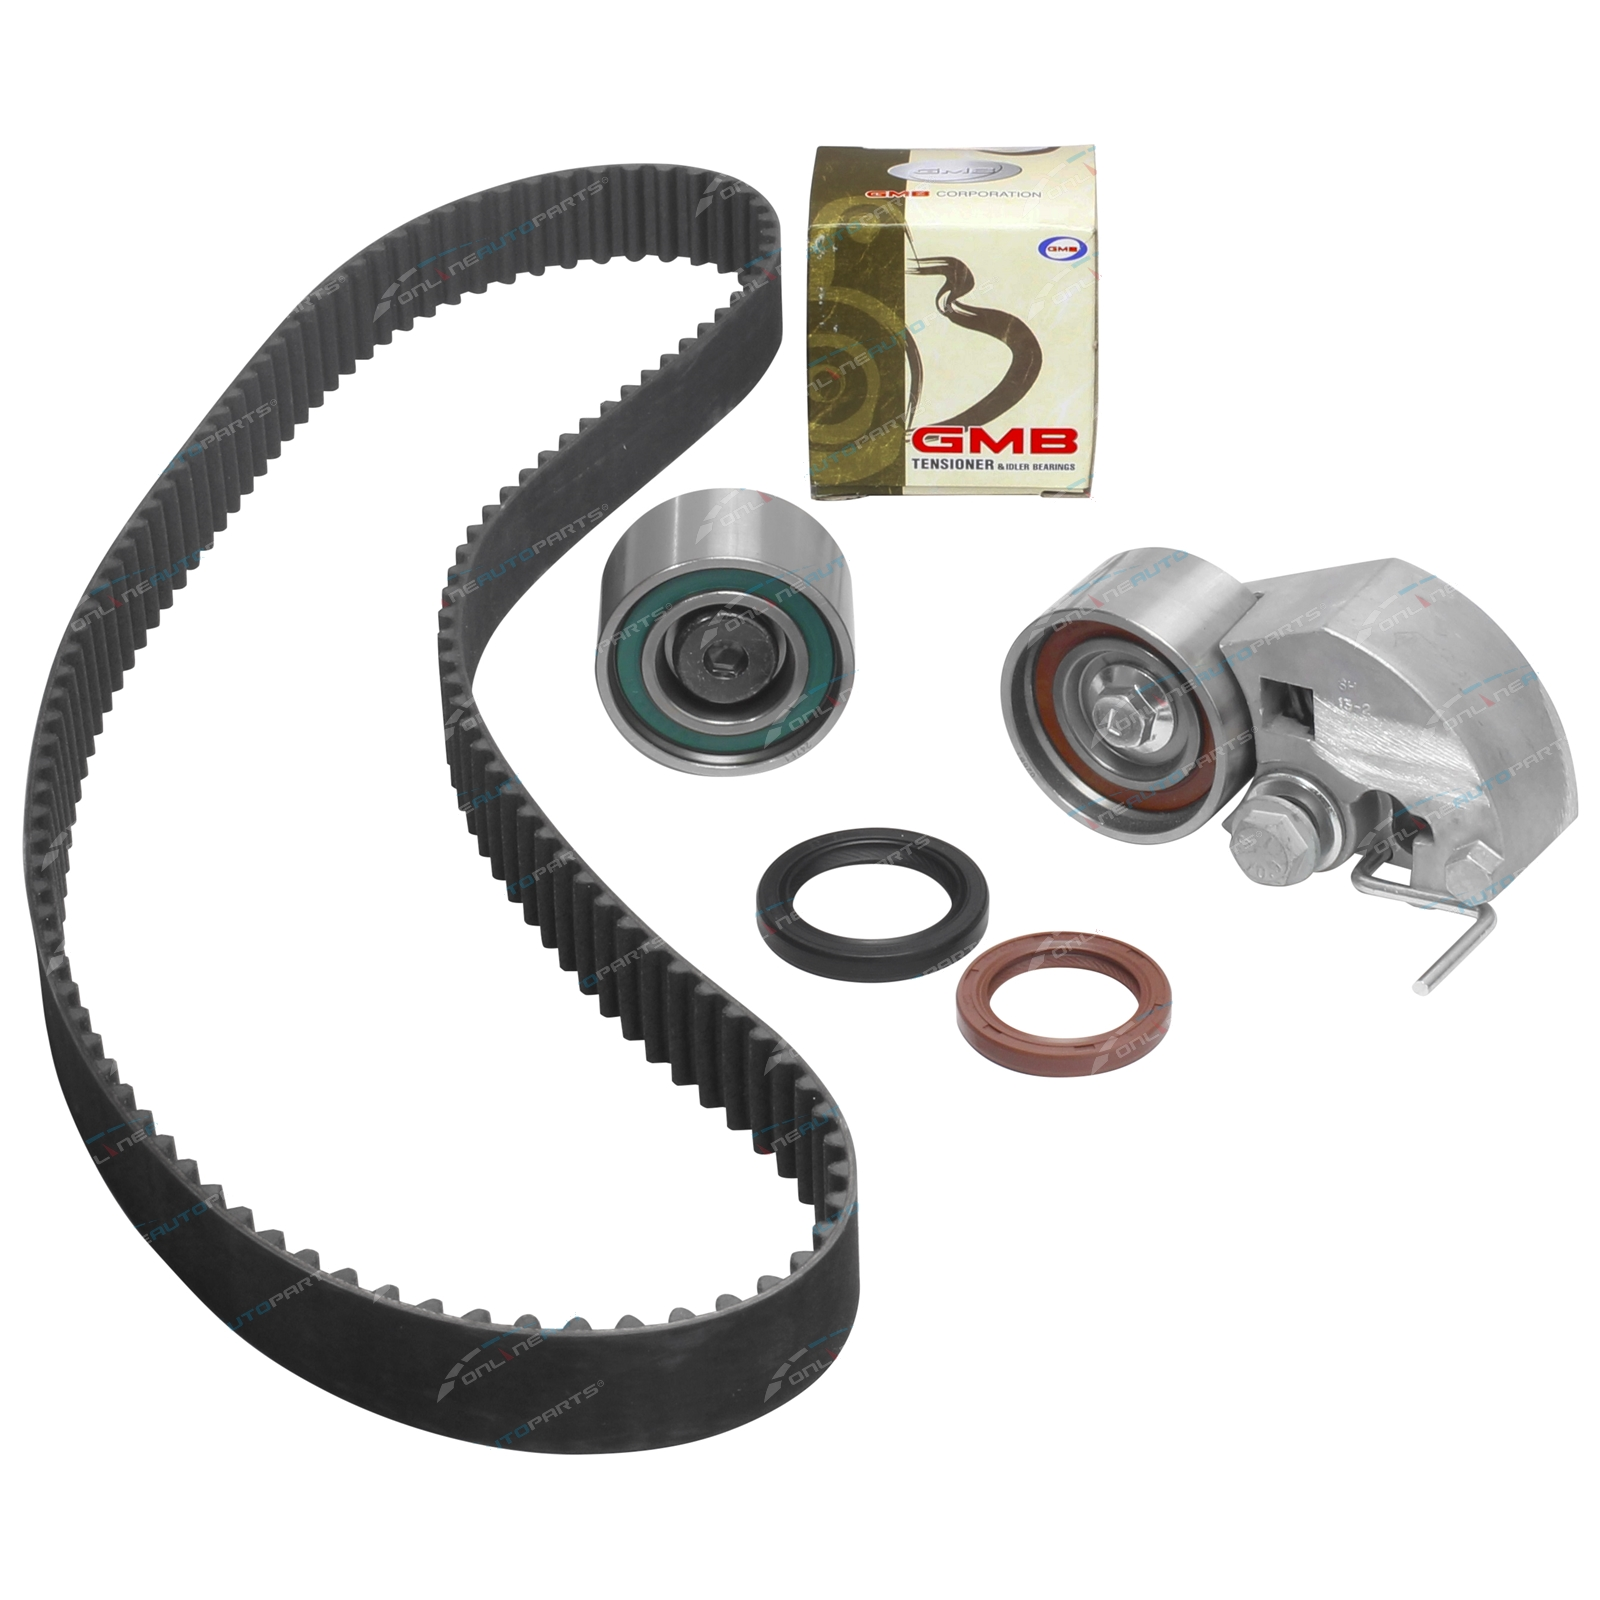 Timing Belt + Tensioner Kit Santa Fe CM 2006-2009 4cyl D4EB 2.2L 2188cc Diesel Hyundai Engine